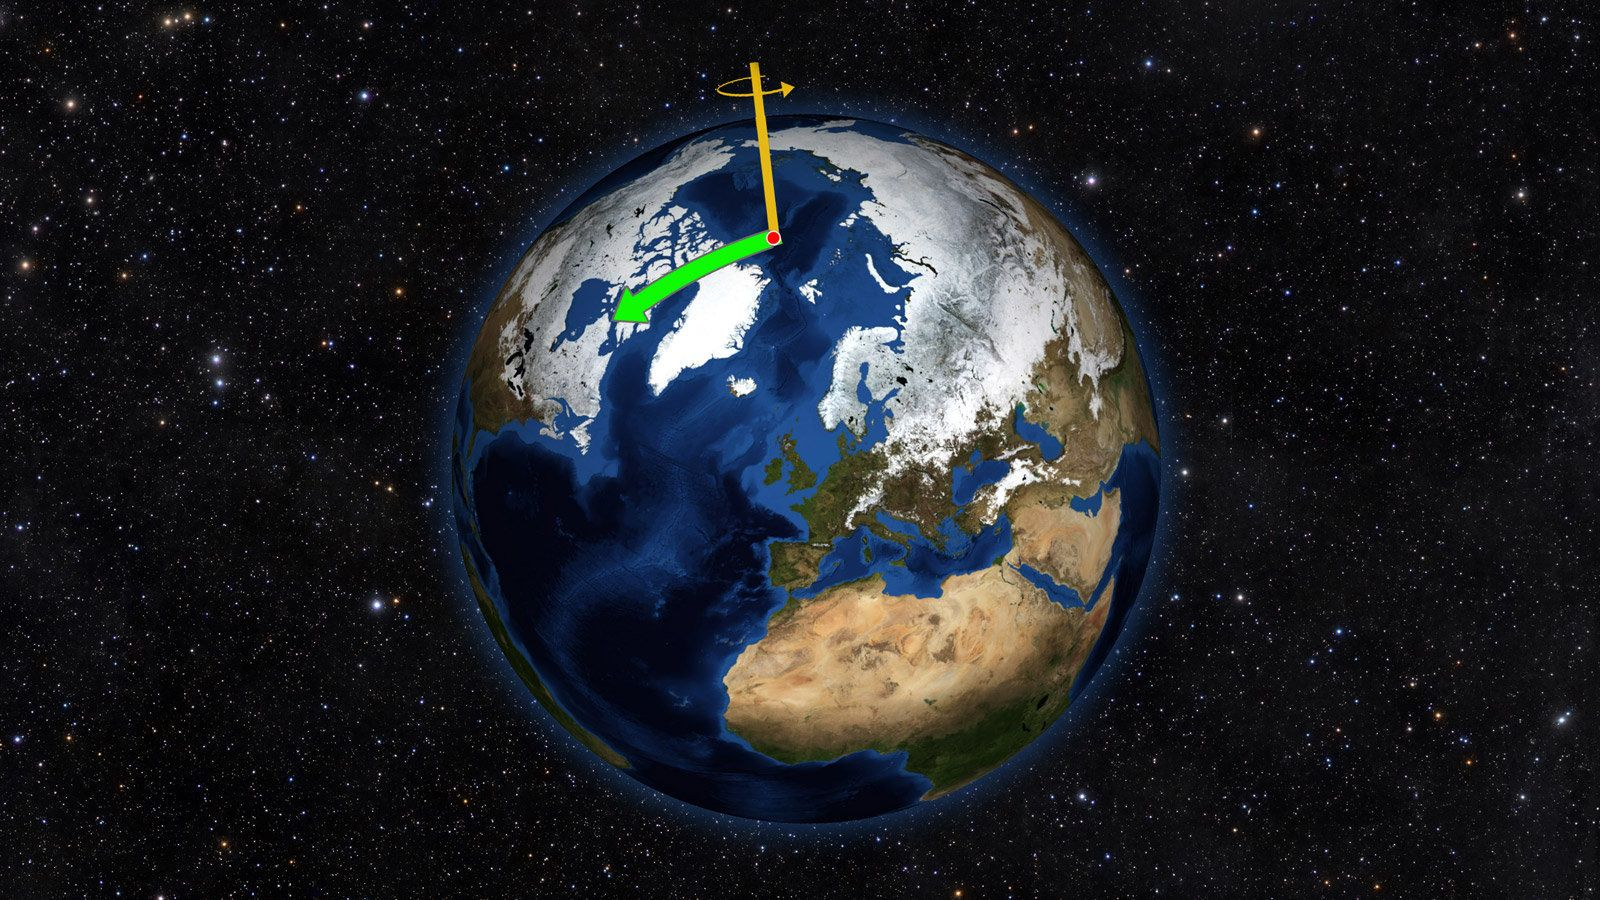 Earth does not always spin on an axis running through its poles. Instead, it wobbles irregularly over...